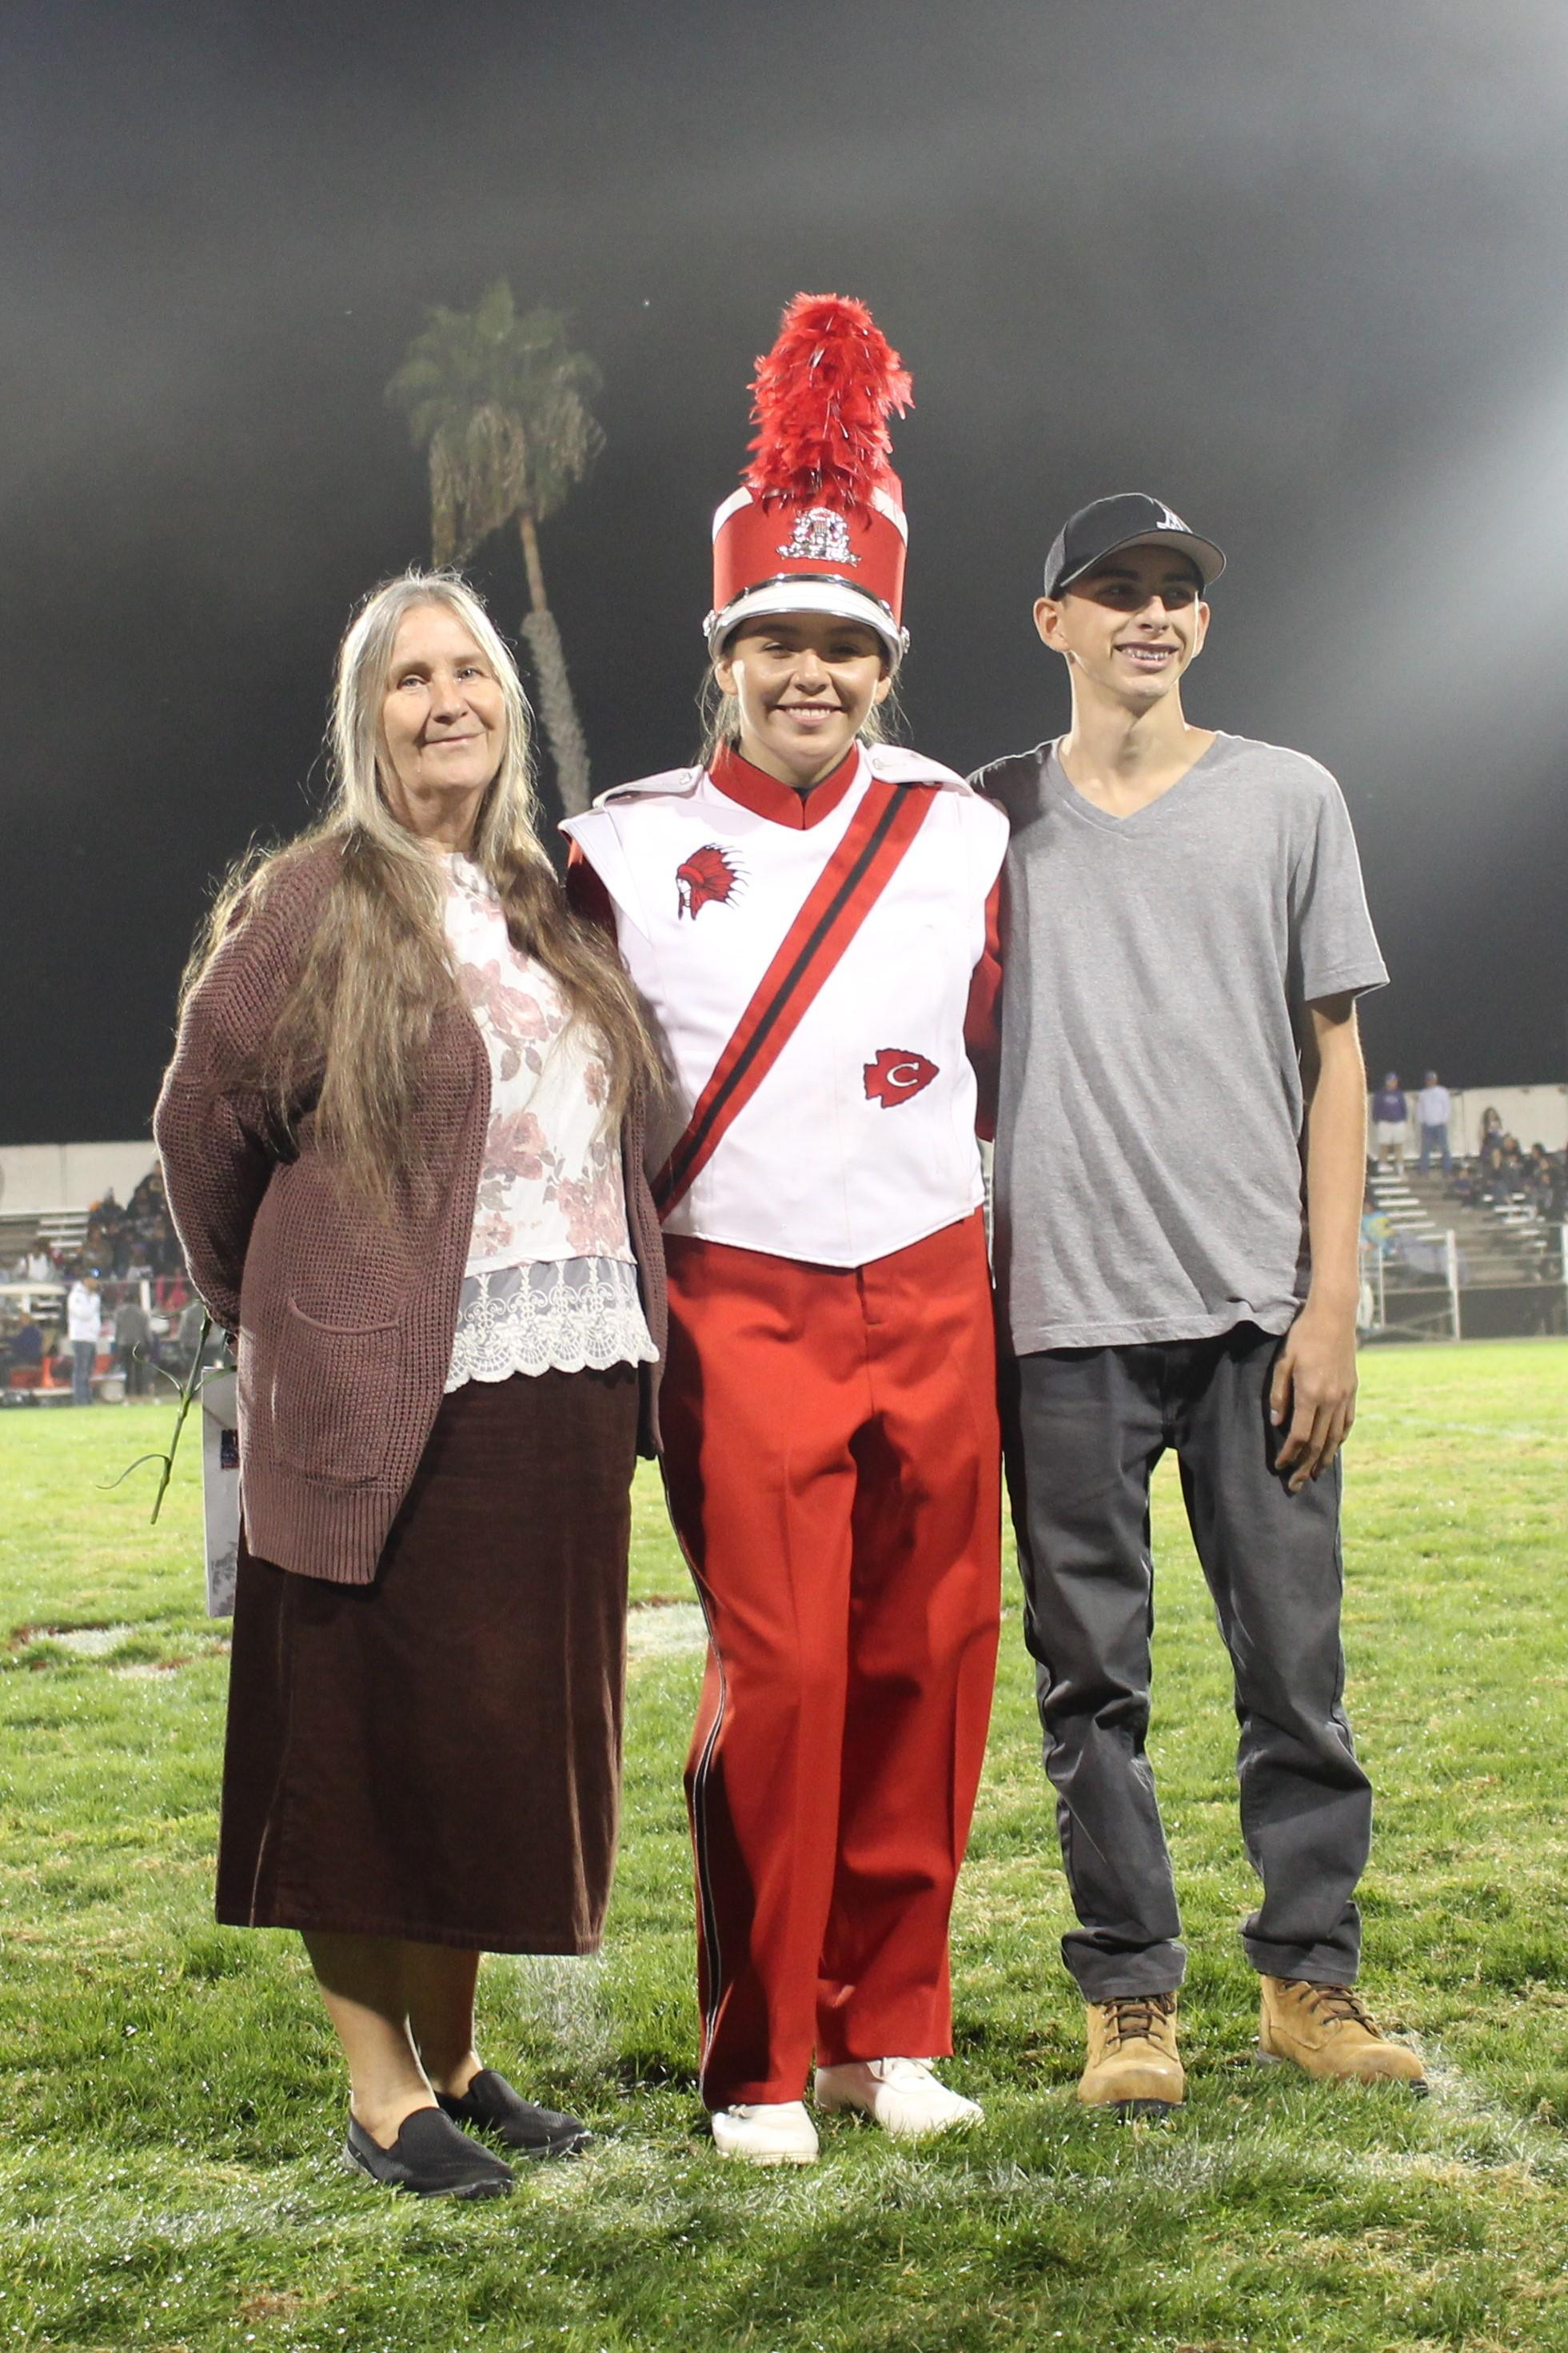 Senior band member Mikayla Mendoza and her escorts.